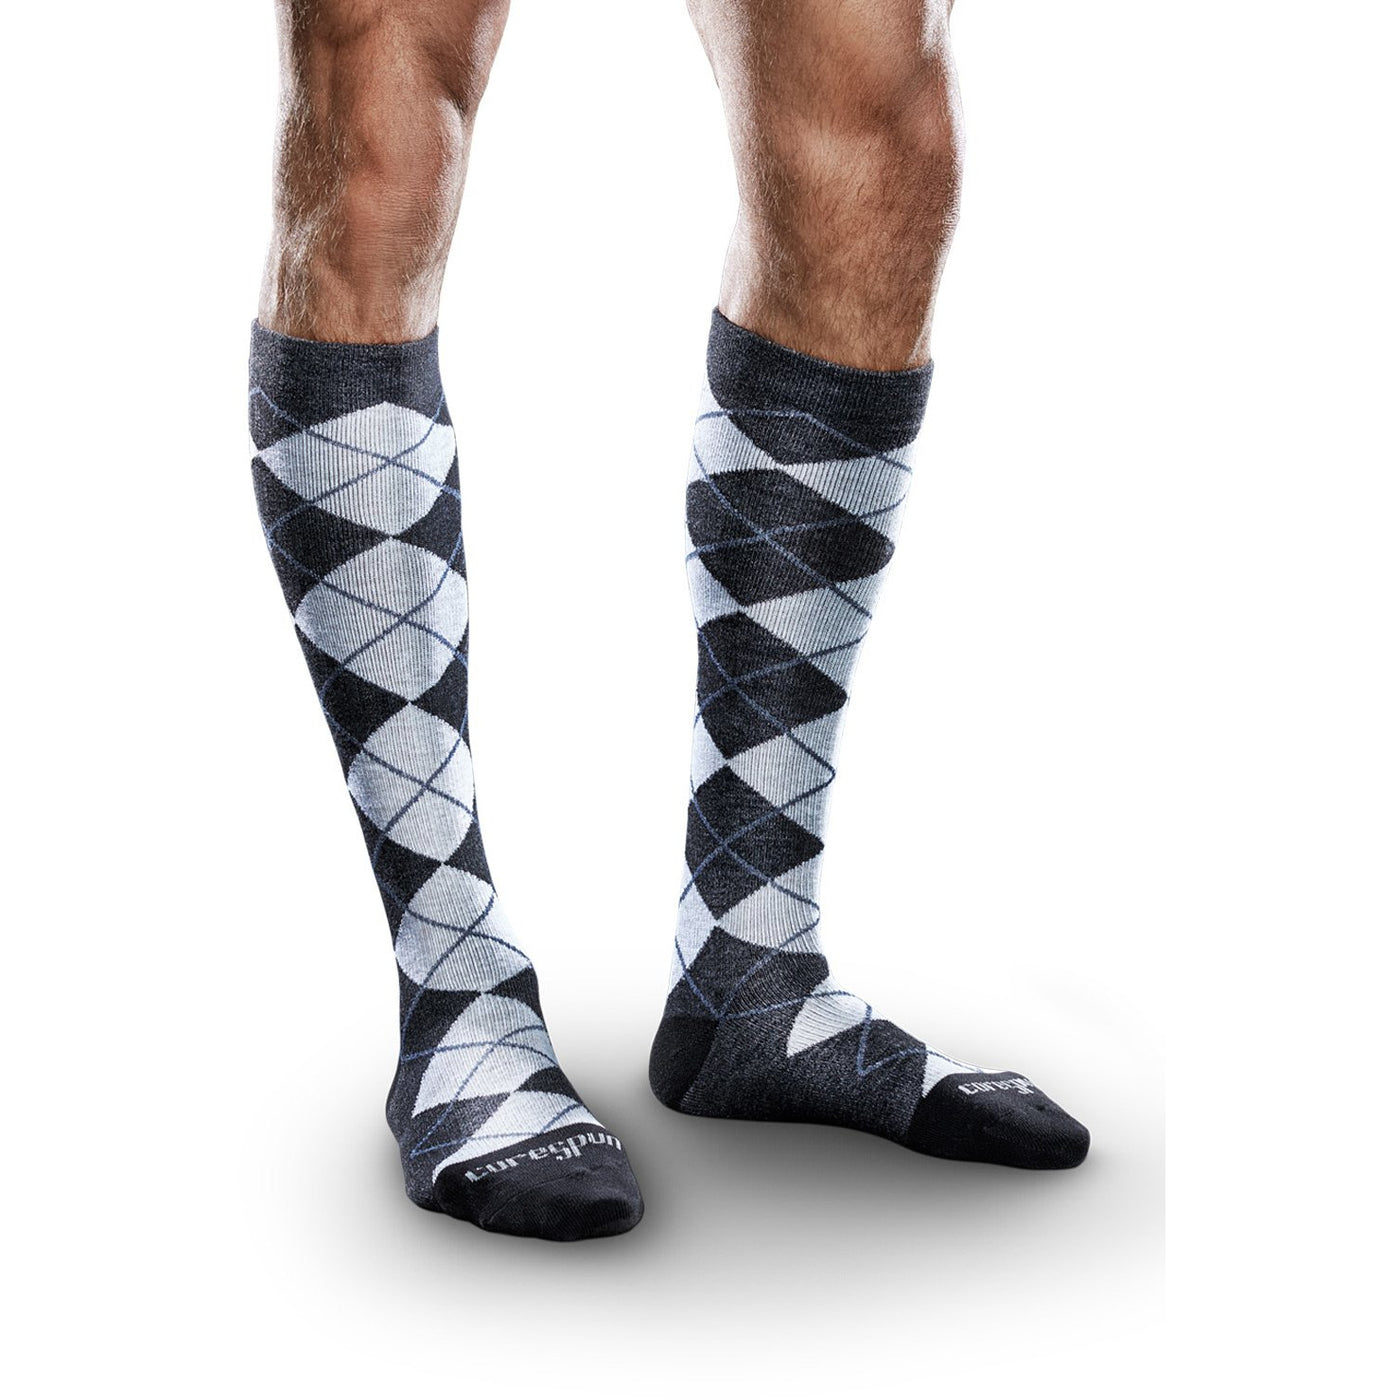 9696c24fae Therafirm Core-Spun Argyle Compression Socks 10-15 mmHg for Men and ...